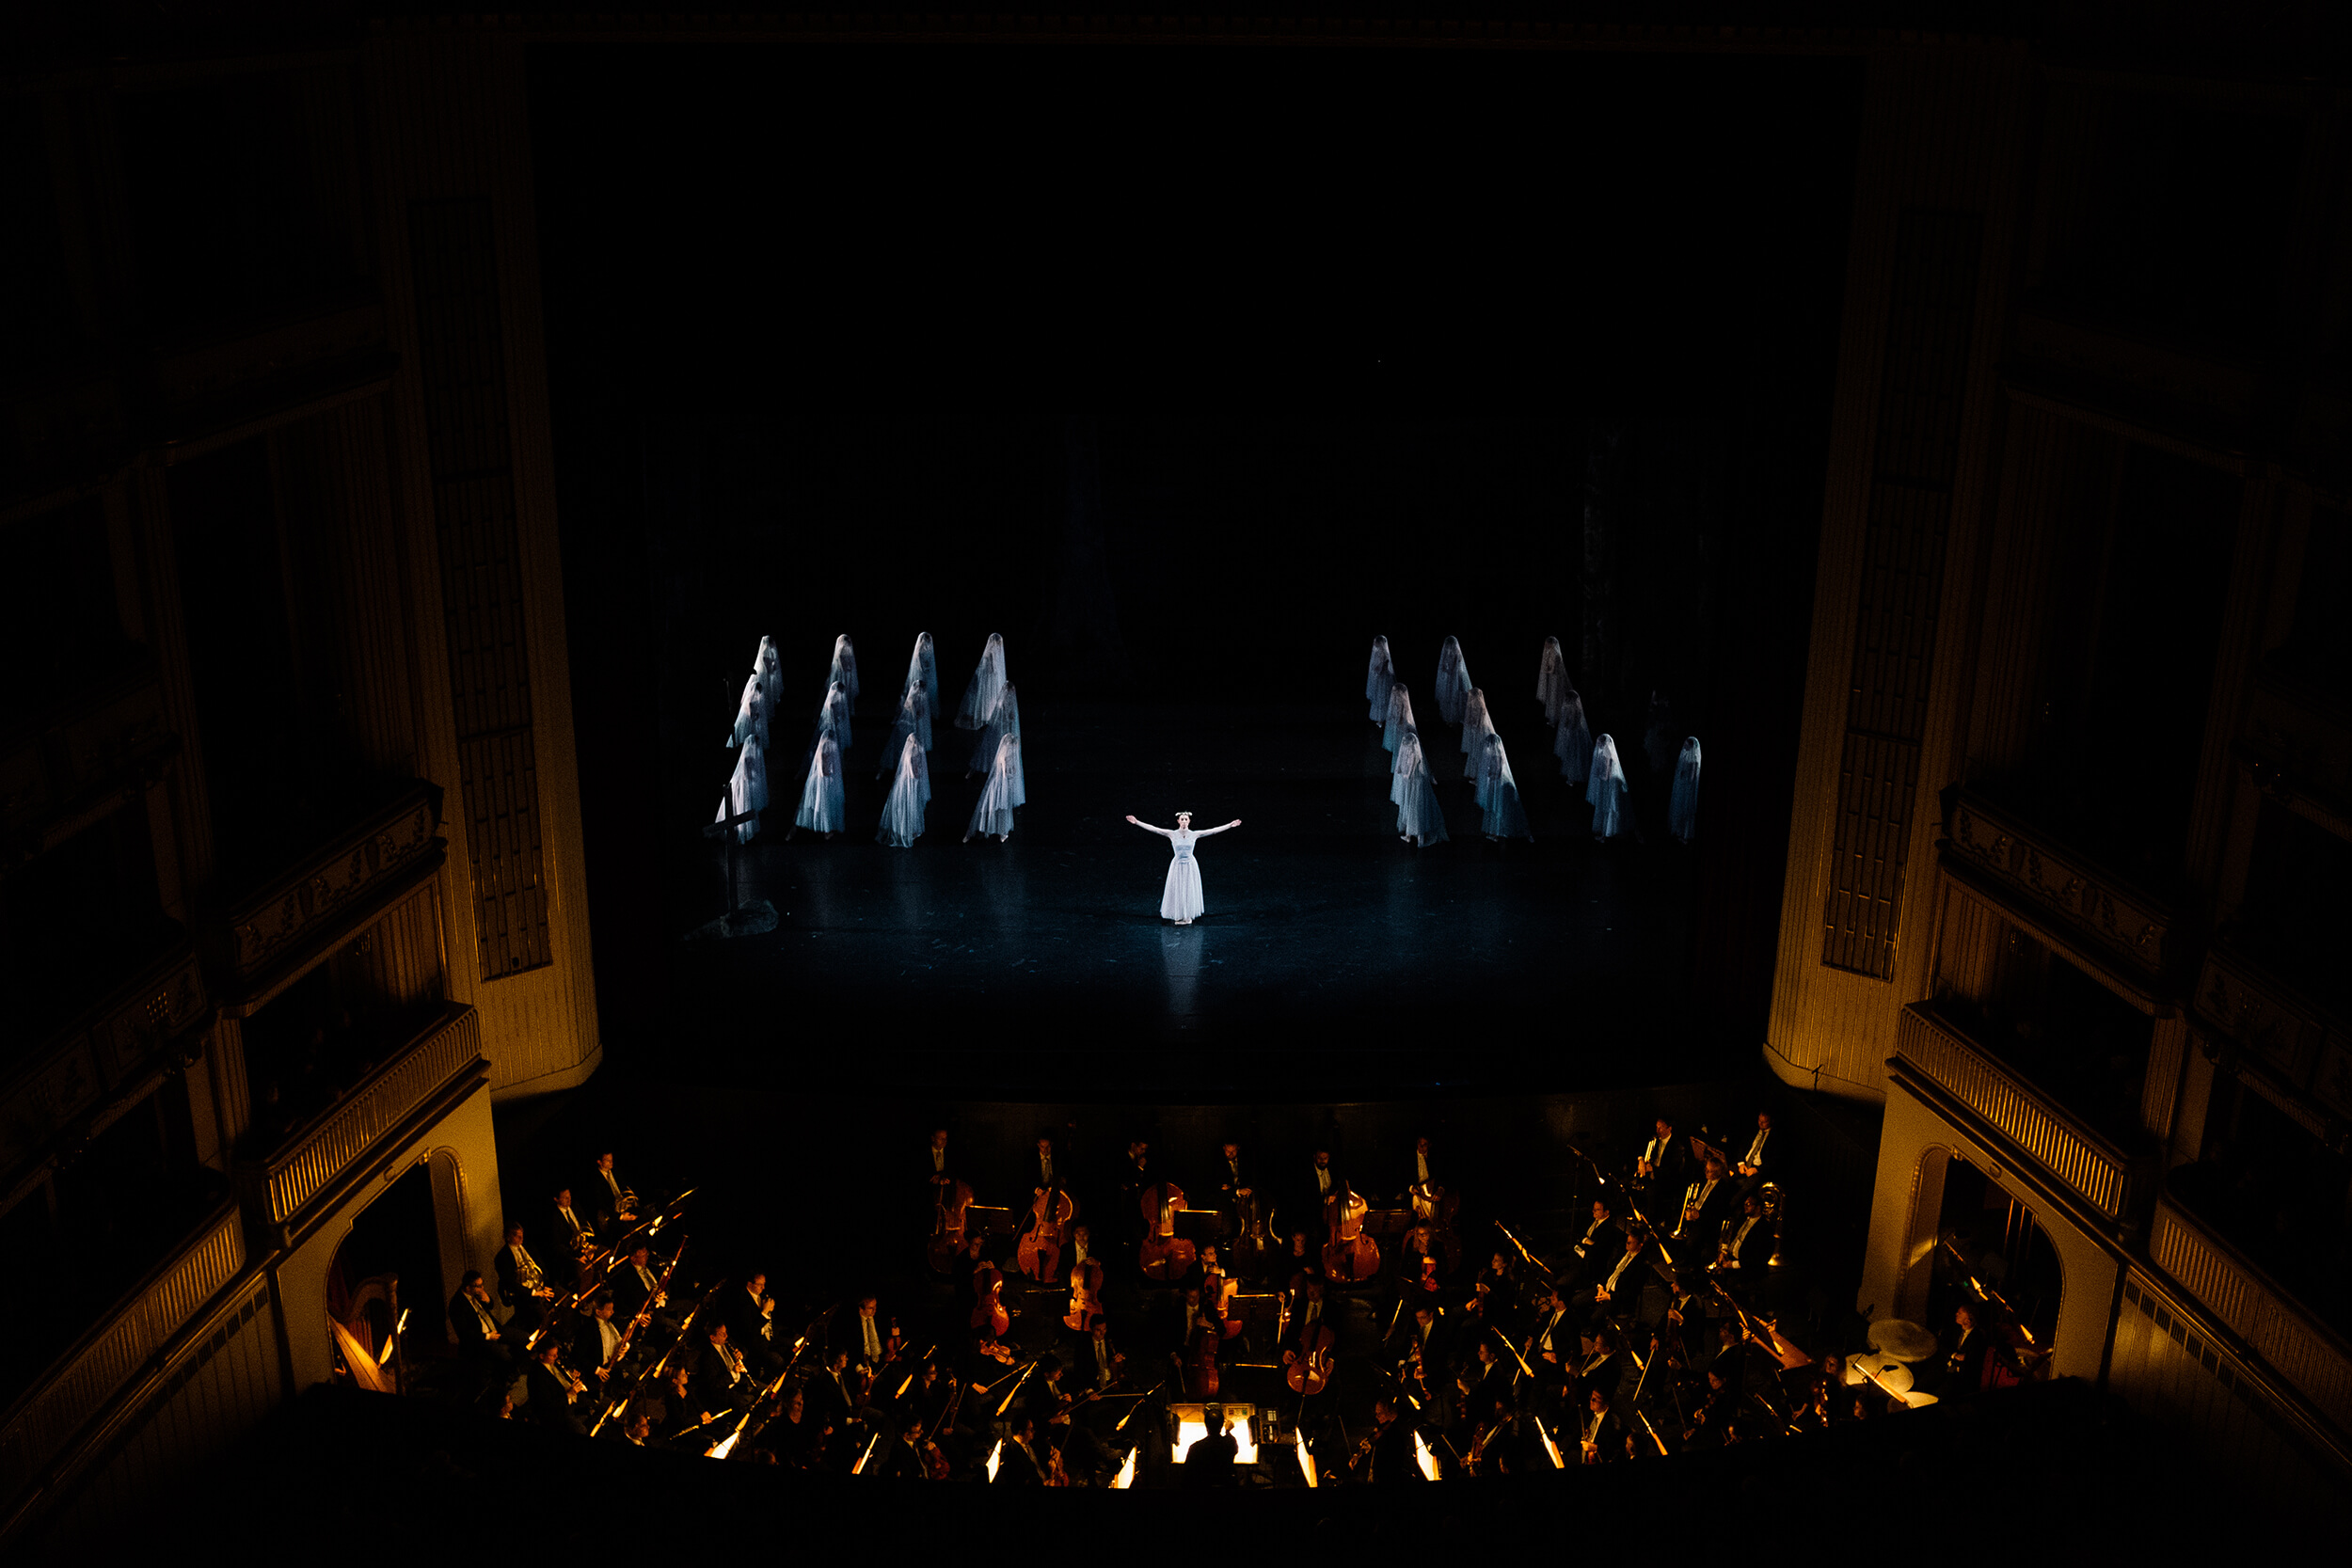 Giselle ballet at the Vienna State Opera